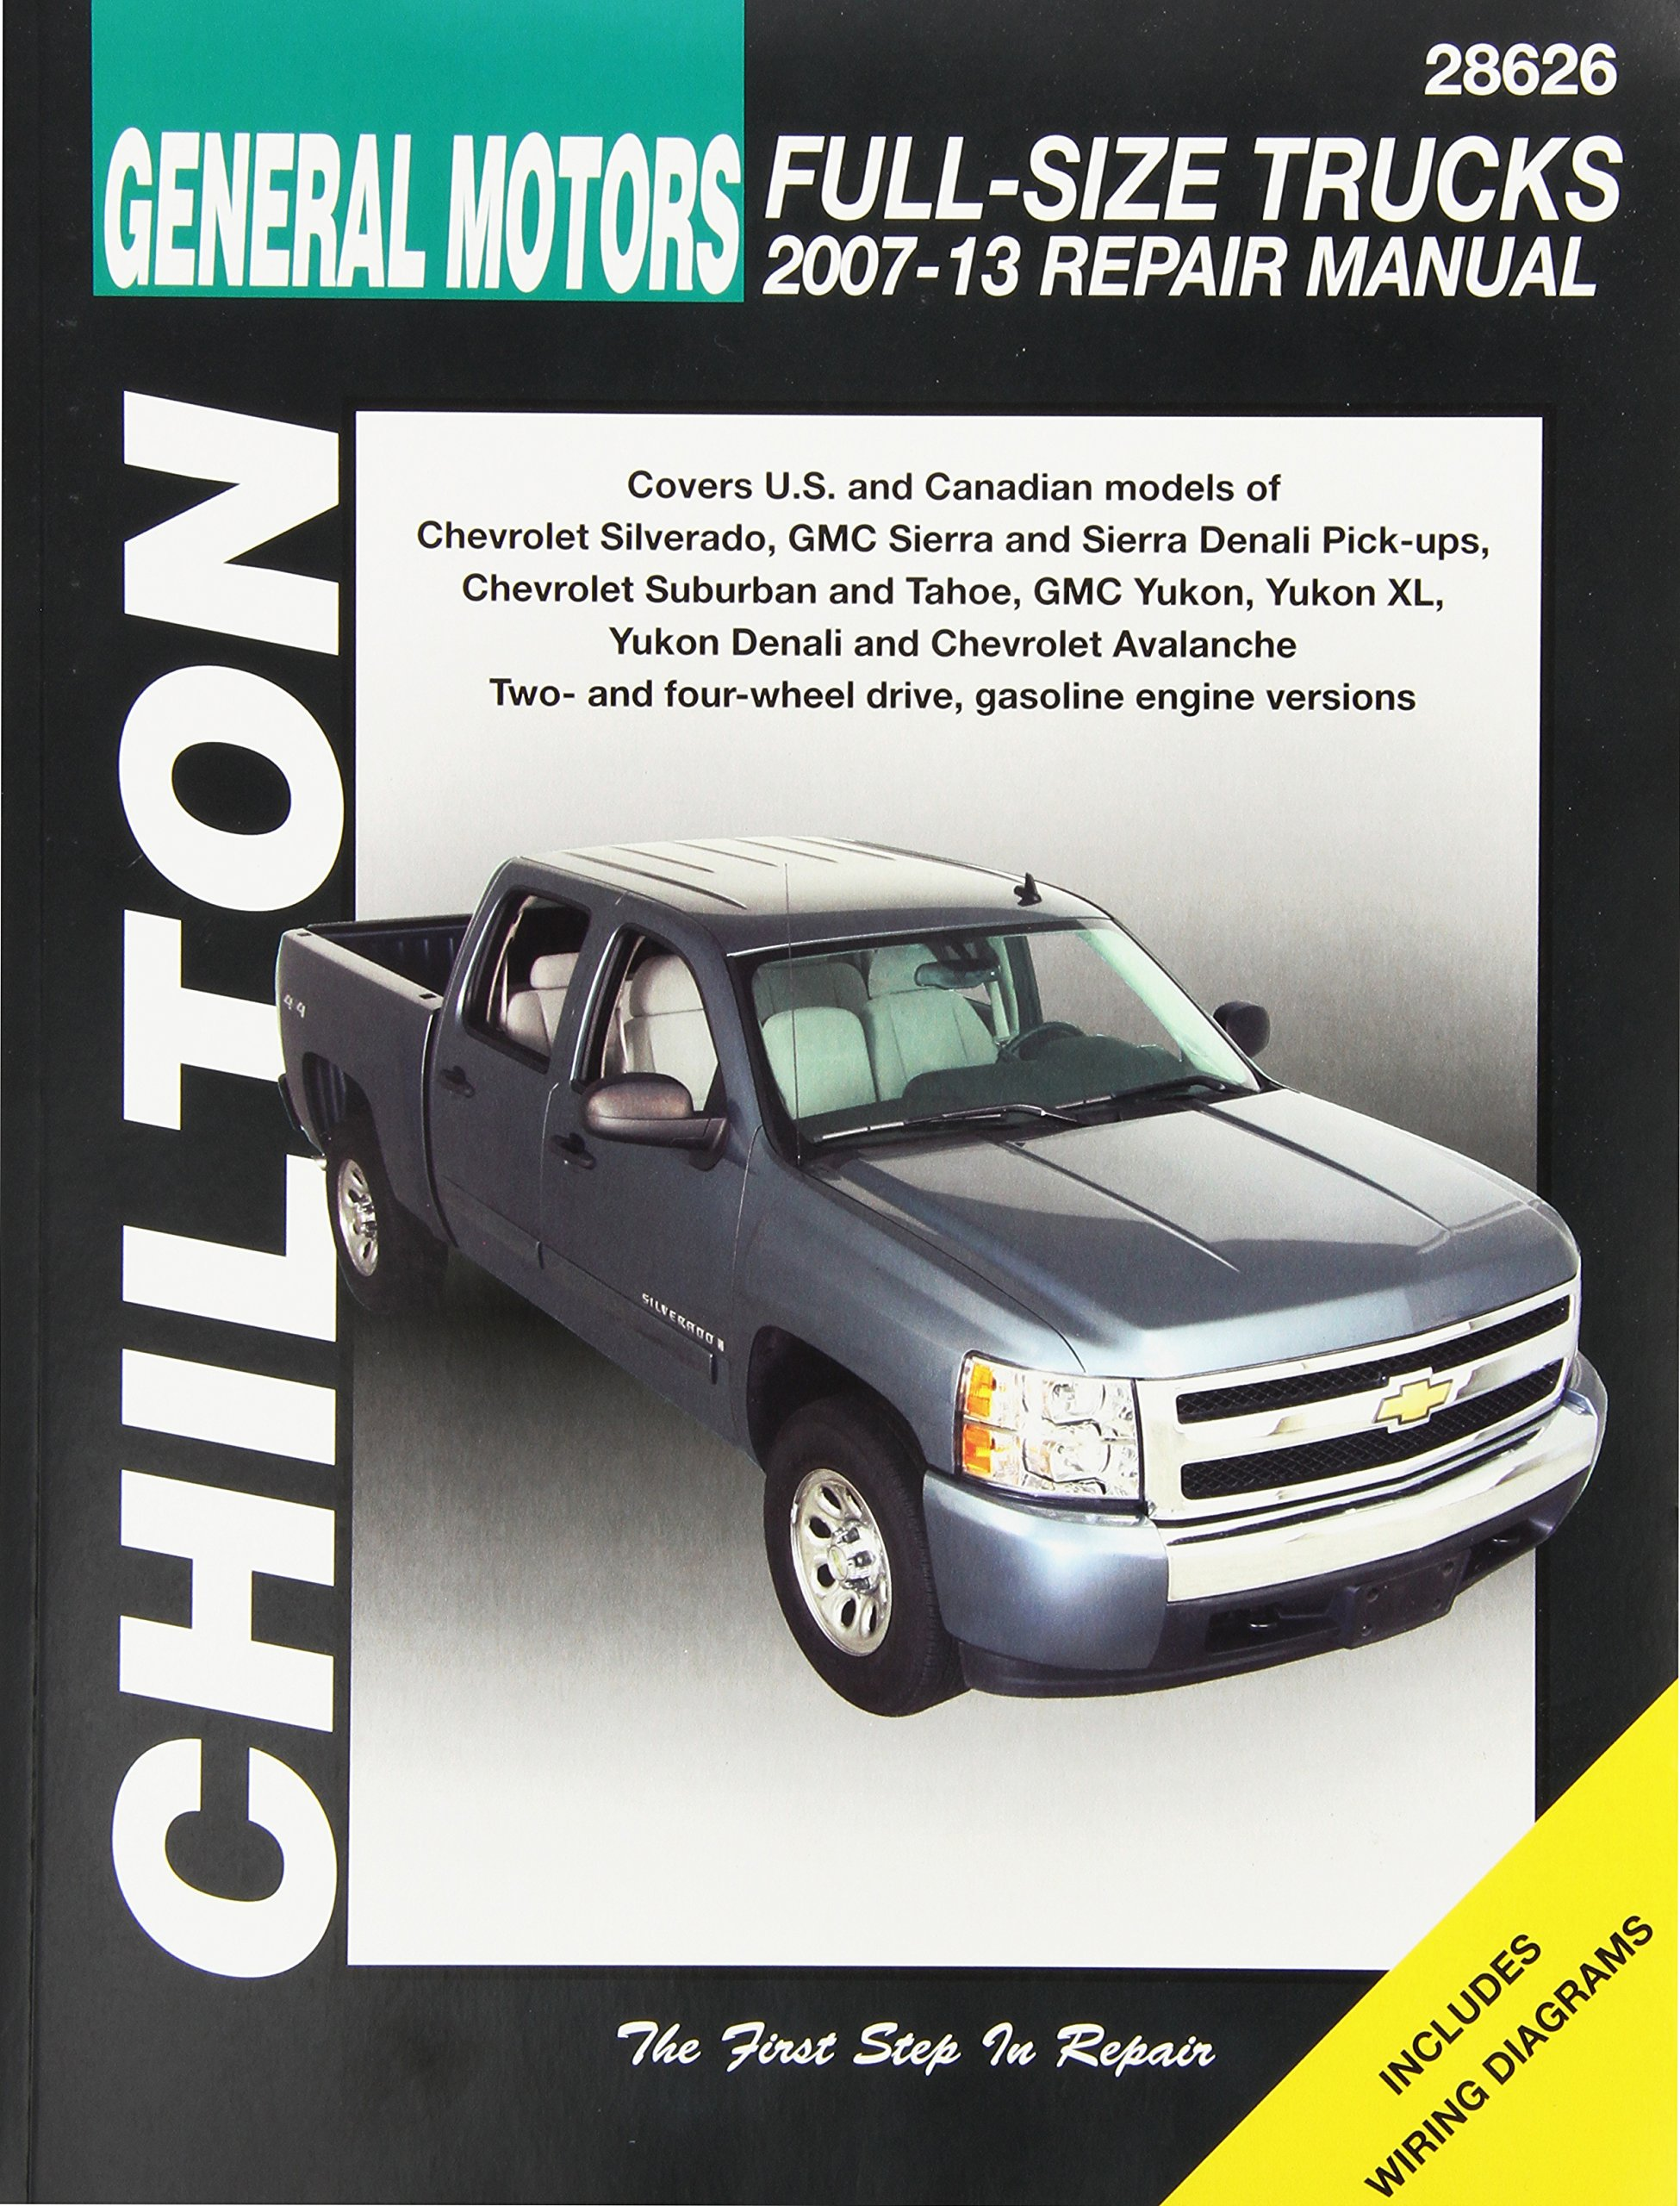 amazon com gm full size trucks chilton repair manual 2007 2012 rh amazon com 96 Chevy 1500 Wiring Diagram 96 Chevy 1500 Specs